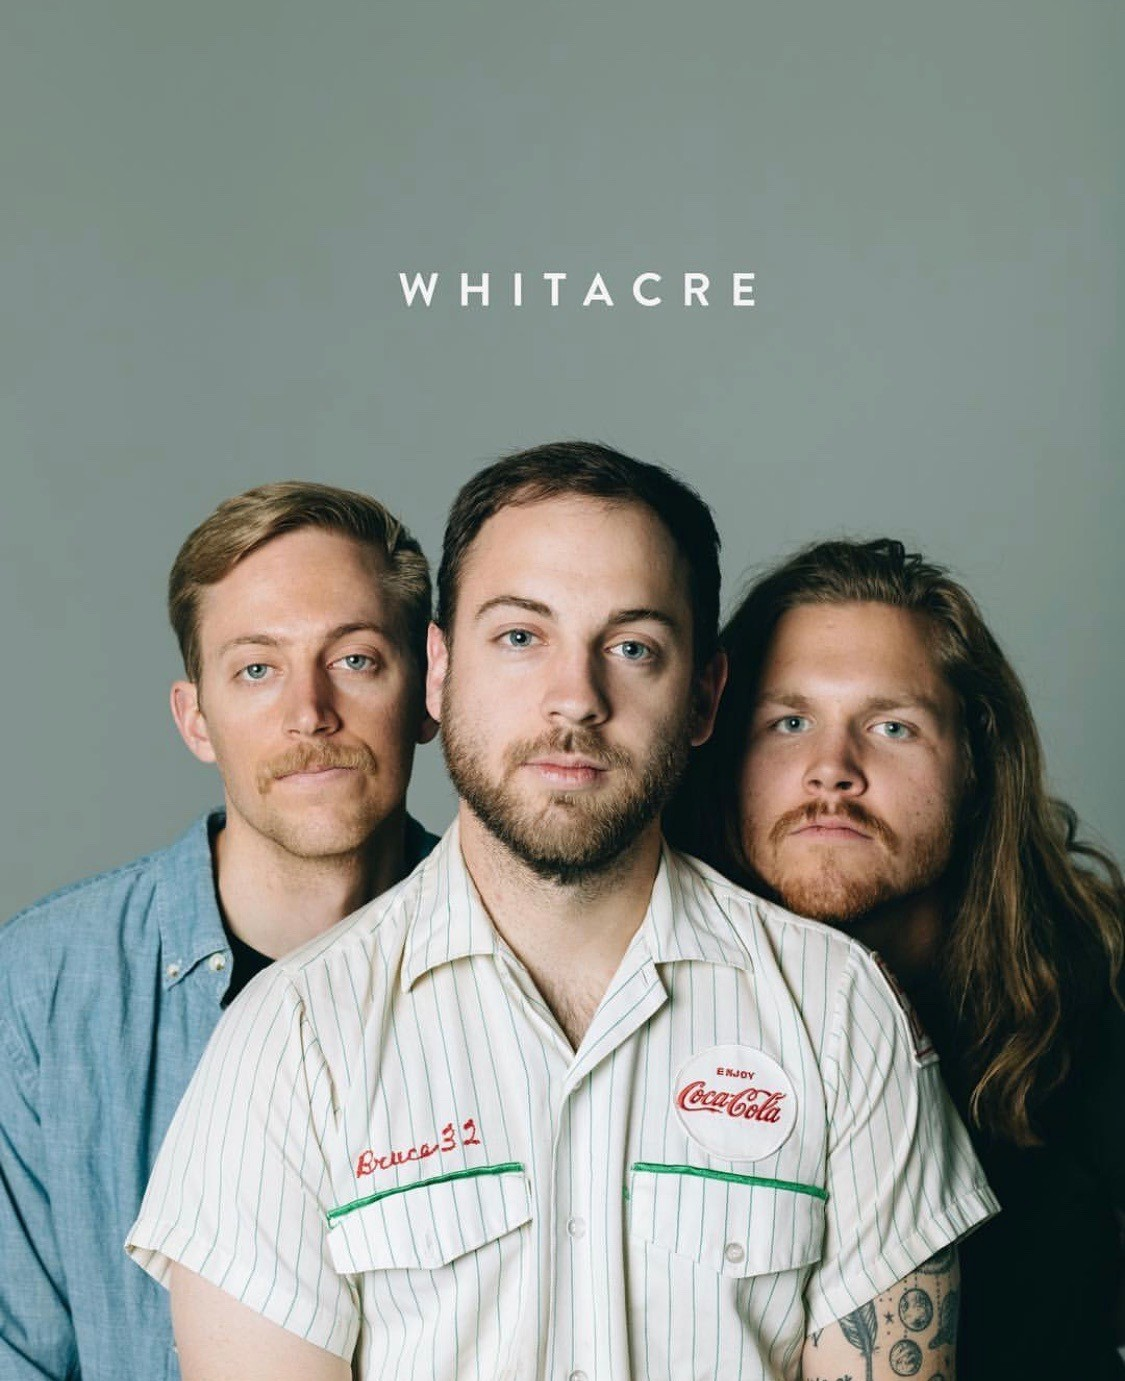 An acoustic evening with Whitacre